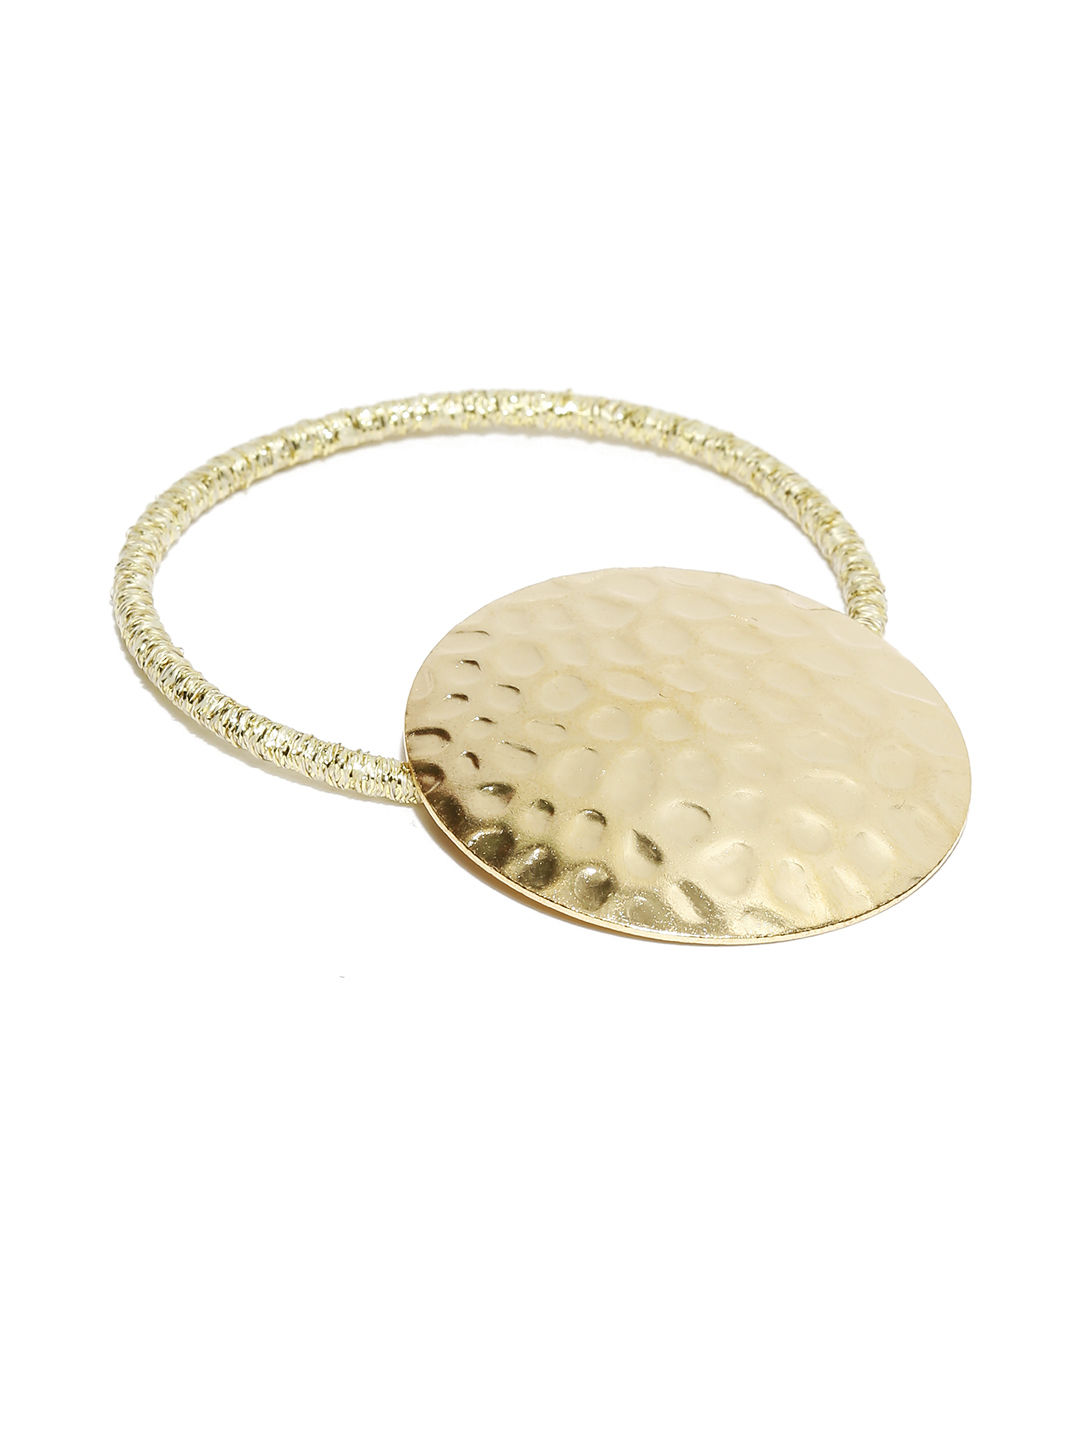 Toniq hammer Coin Metallic Rubber Band  available at Nykaa for Rs.145